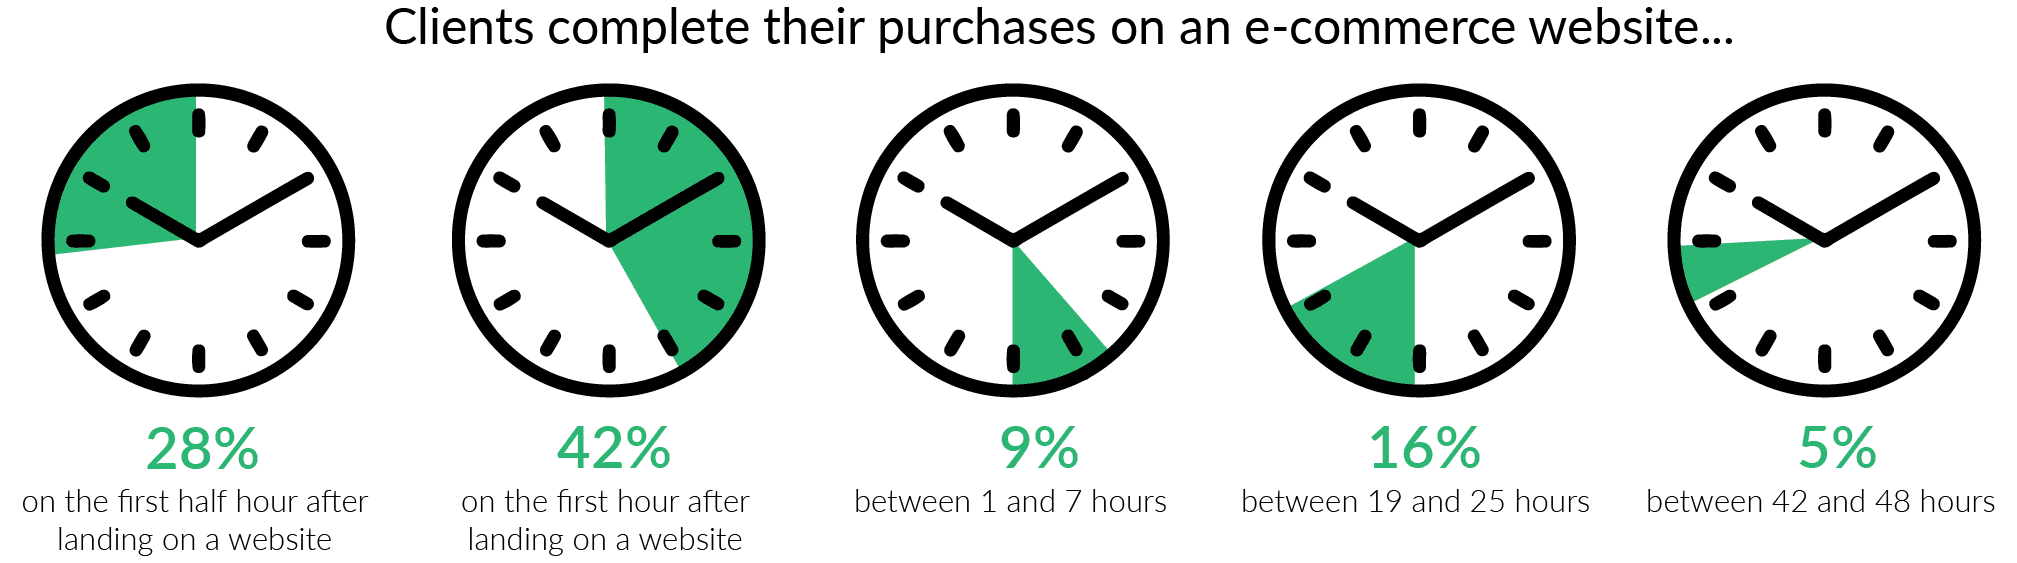 activation time for ecommerce purchase